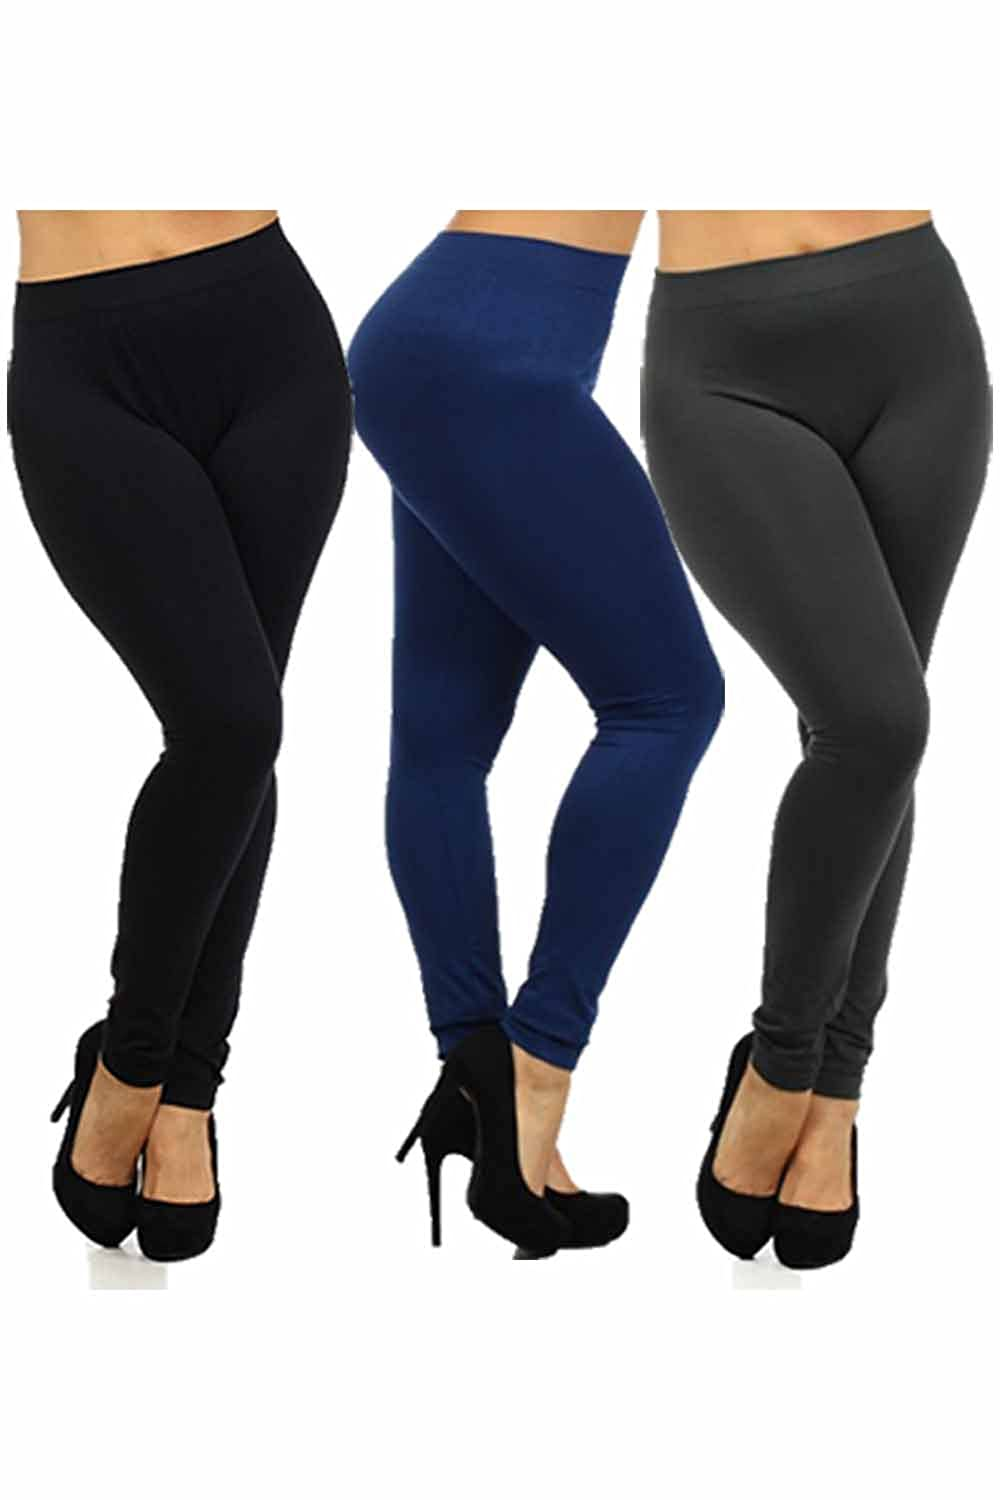 Women's Plus Size Basic Leggings 1X/2X and 3X/4X (1X, Black/Navy/Grey)